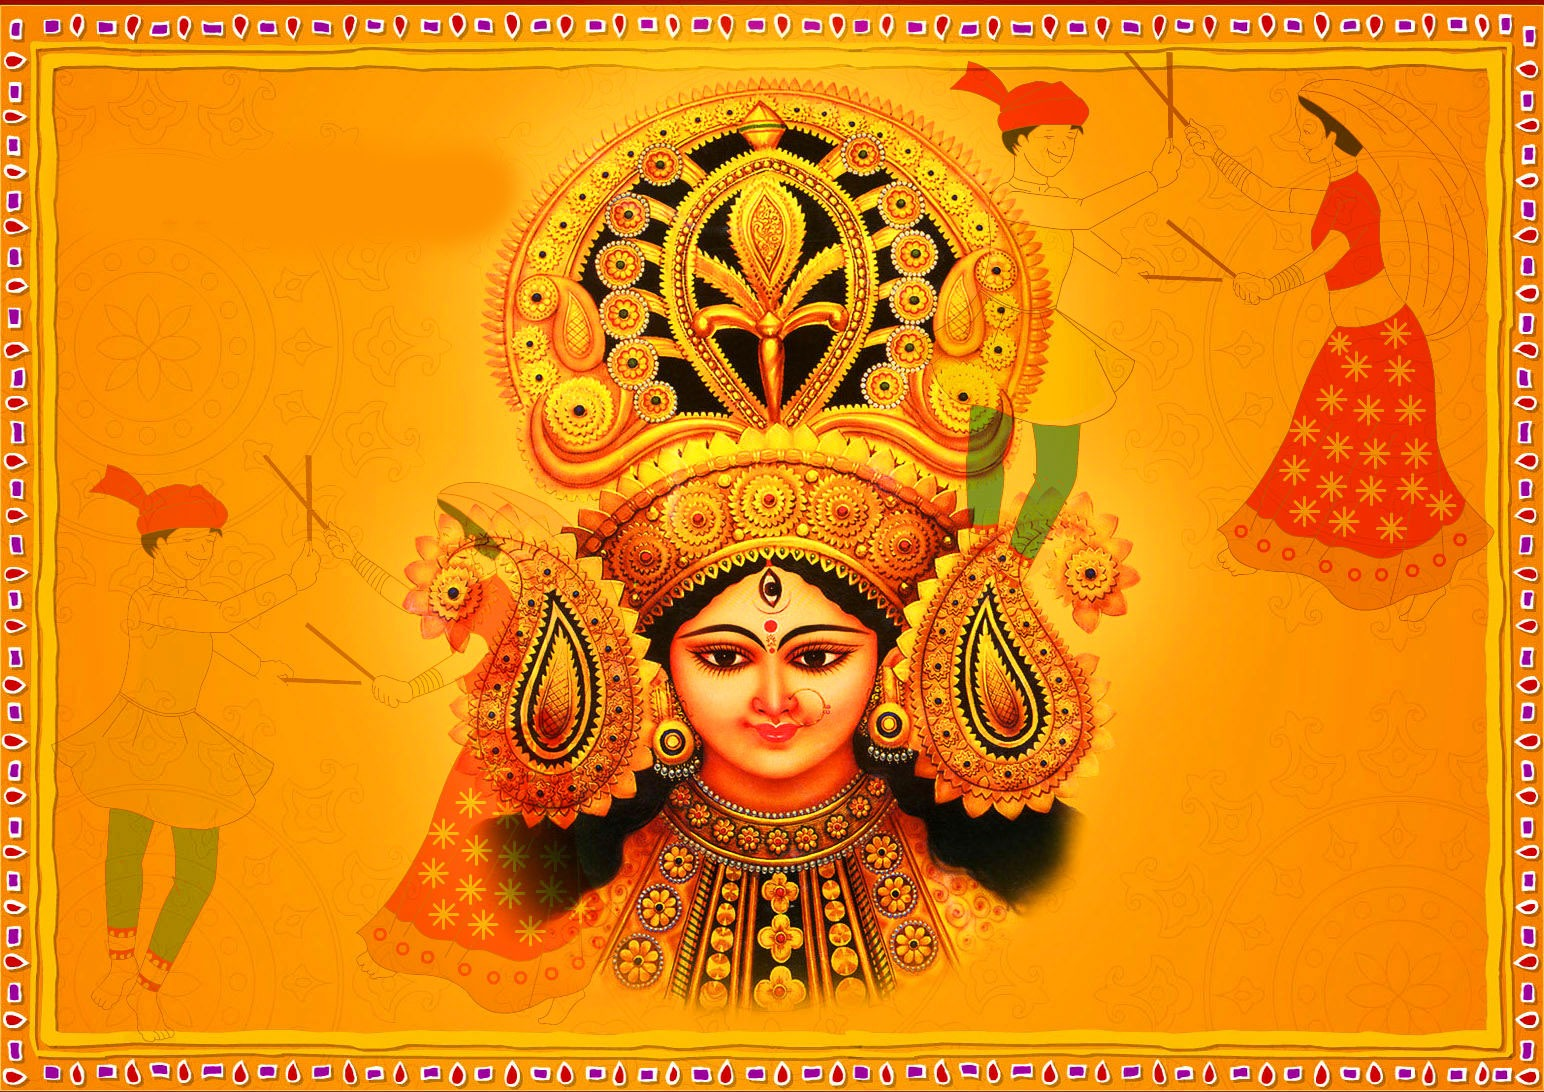 Beautiful Durga Maa Images photo for download